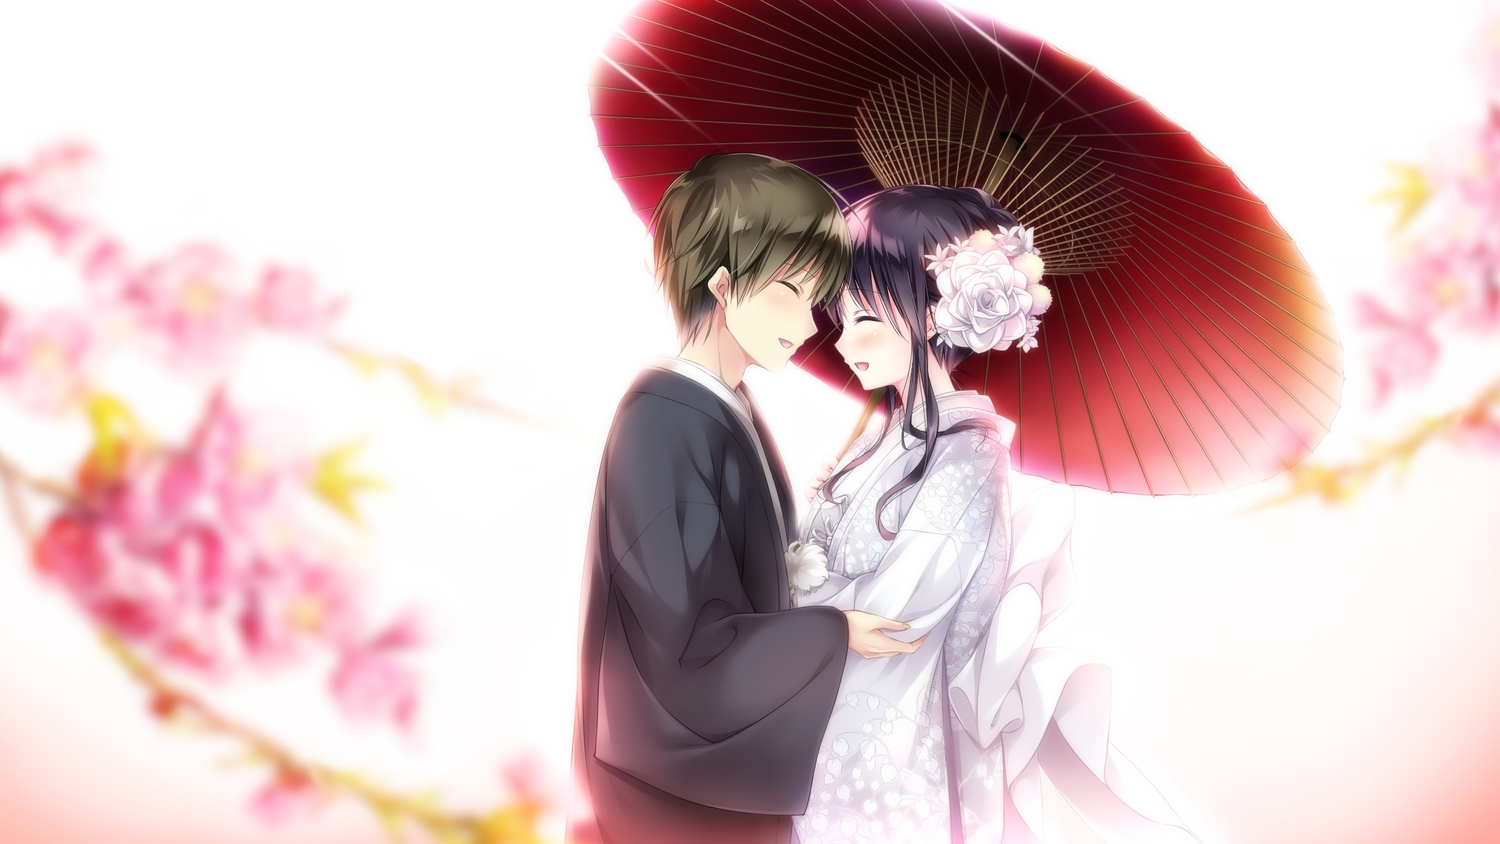 black_hair cherry_blossoms ensemble_(company) flowers game_cg japanese_clothes kimono koi_wa_sotto_saku_hana_no_you_ni male sumeragi_rei tagme_(artist) toudou_nazuna umbrella wedding wedding_attire